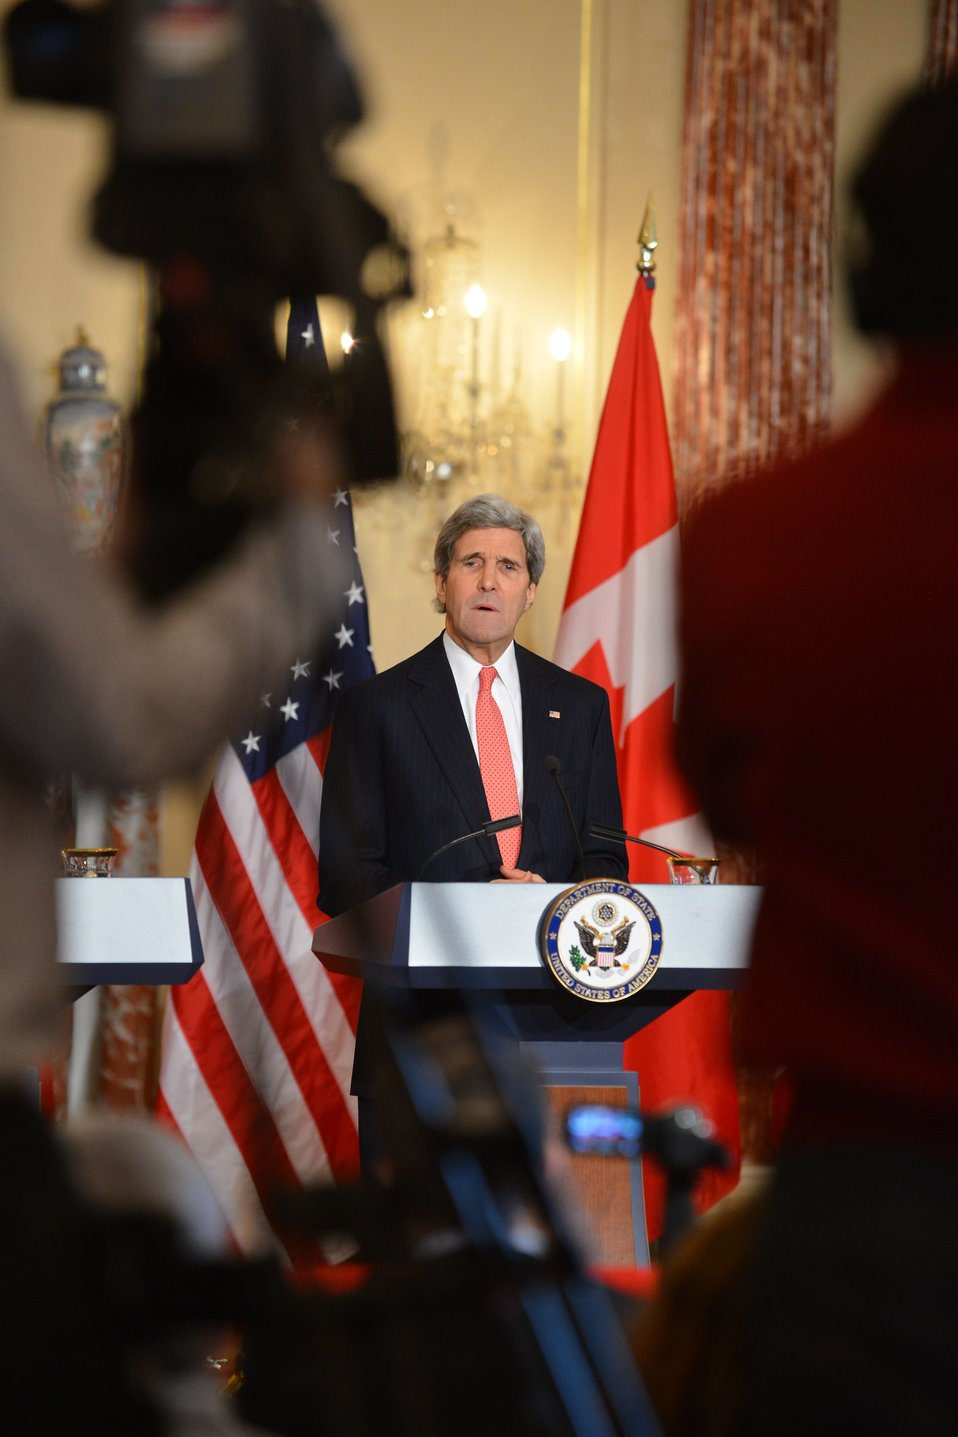 Secretary Kerry Addresses Reporters at the North American Trilateral Ministerial